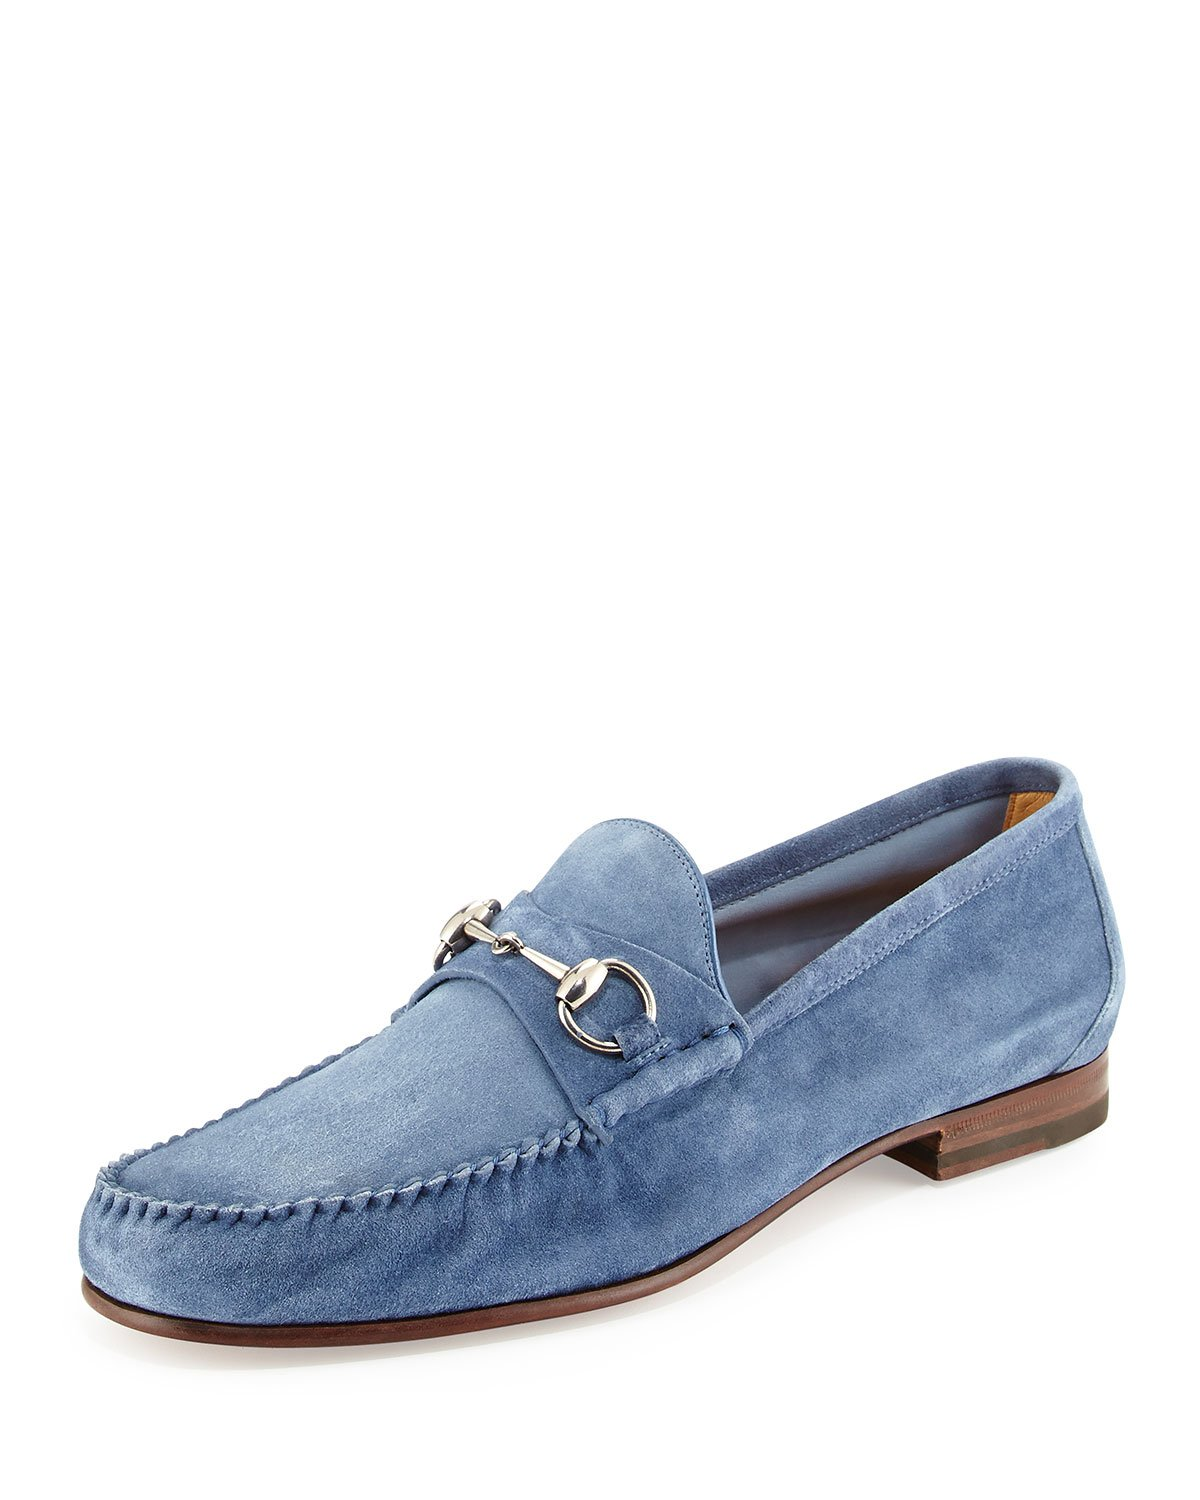 Online shopping for popular & hot Blue Suede Mens Loafers from Shoes, Men's Casual Shoes, Loafers, Formal Shoes and more related Blue Suede Mens Loafers like navy suede loafers men, black suede loafers womens, grey suede loafers men, blue patent mens loafers. Discover over of the best Selection Blue Suede Mens Loafers on downloadsolutionspa5tr.gq